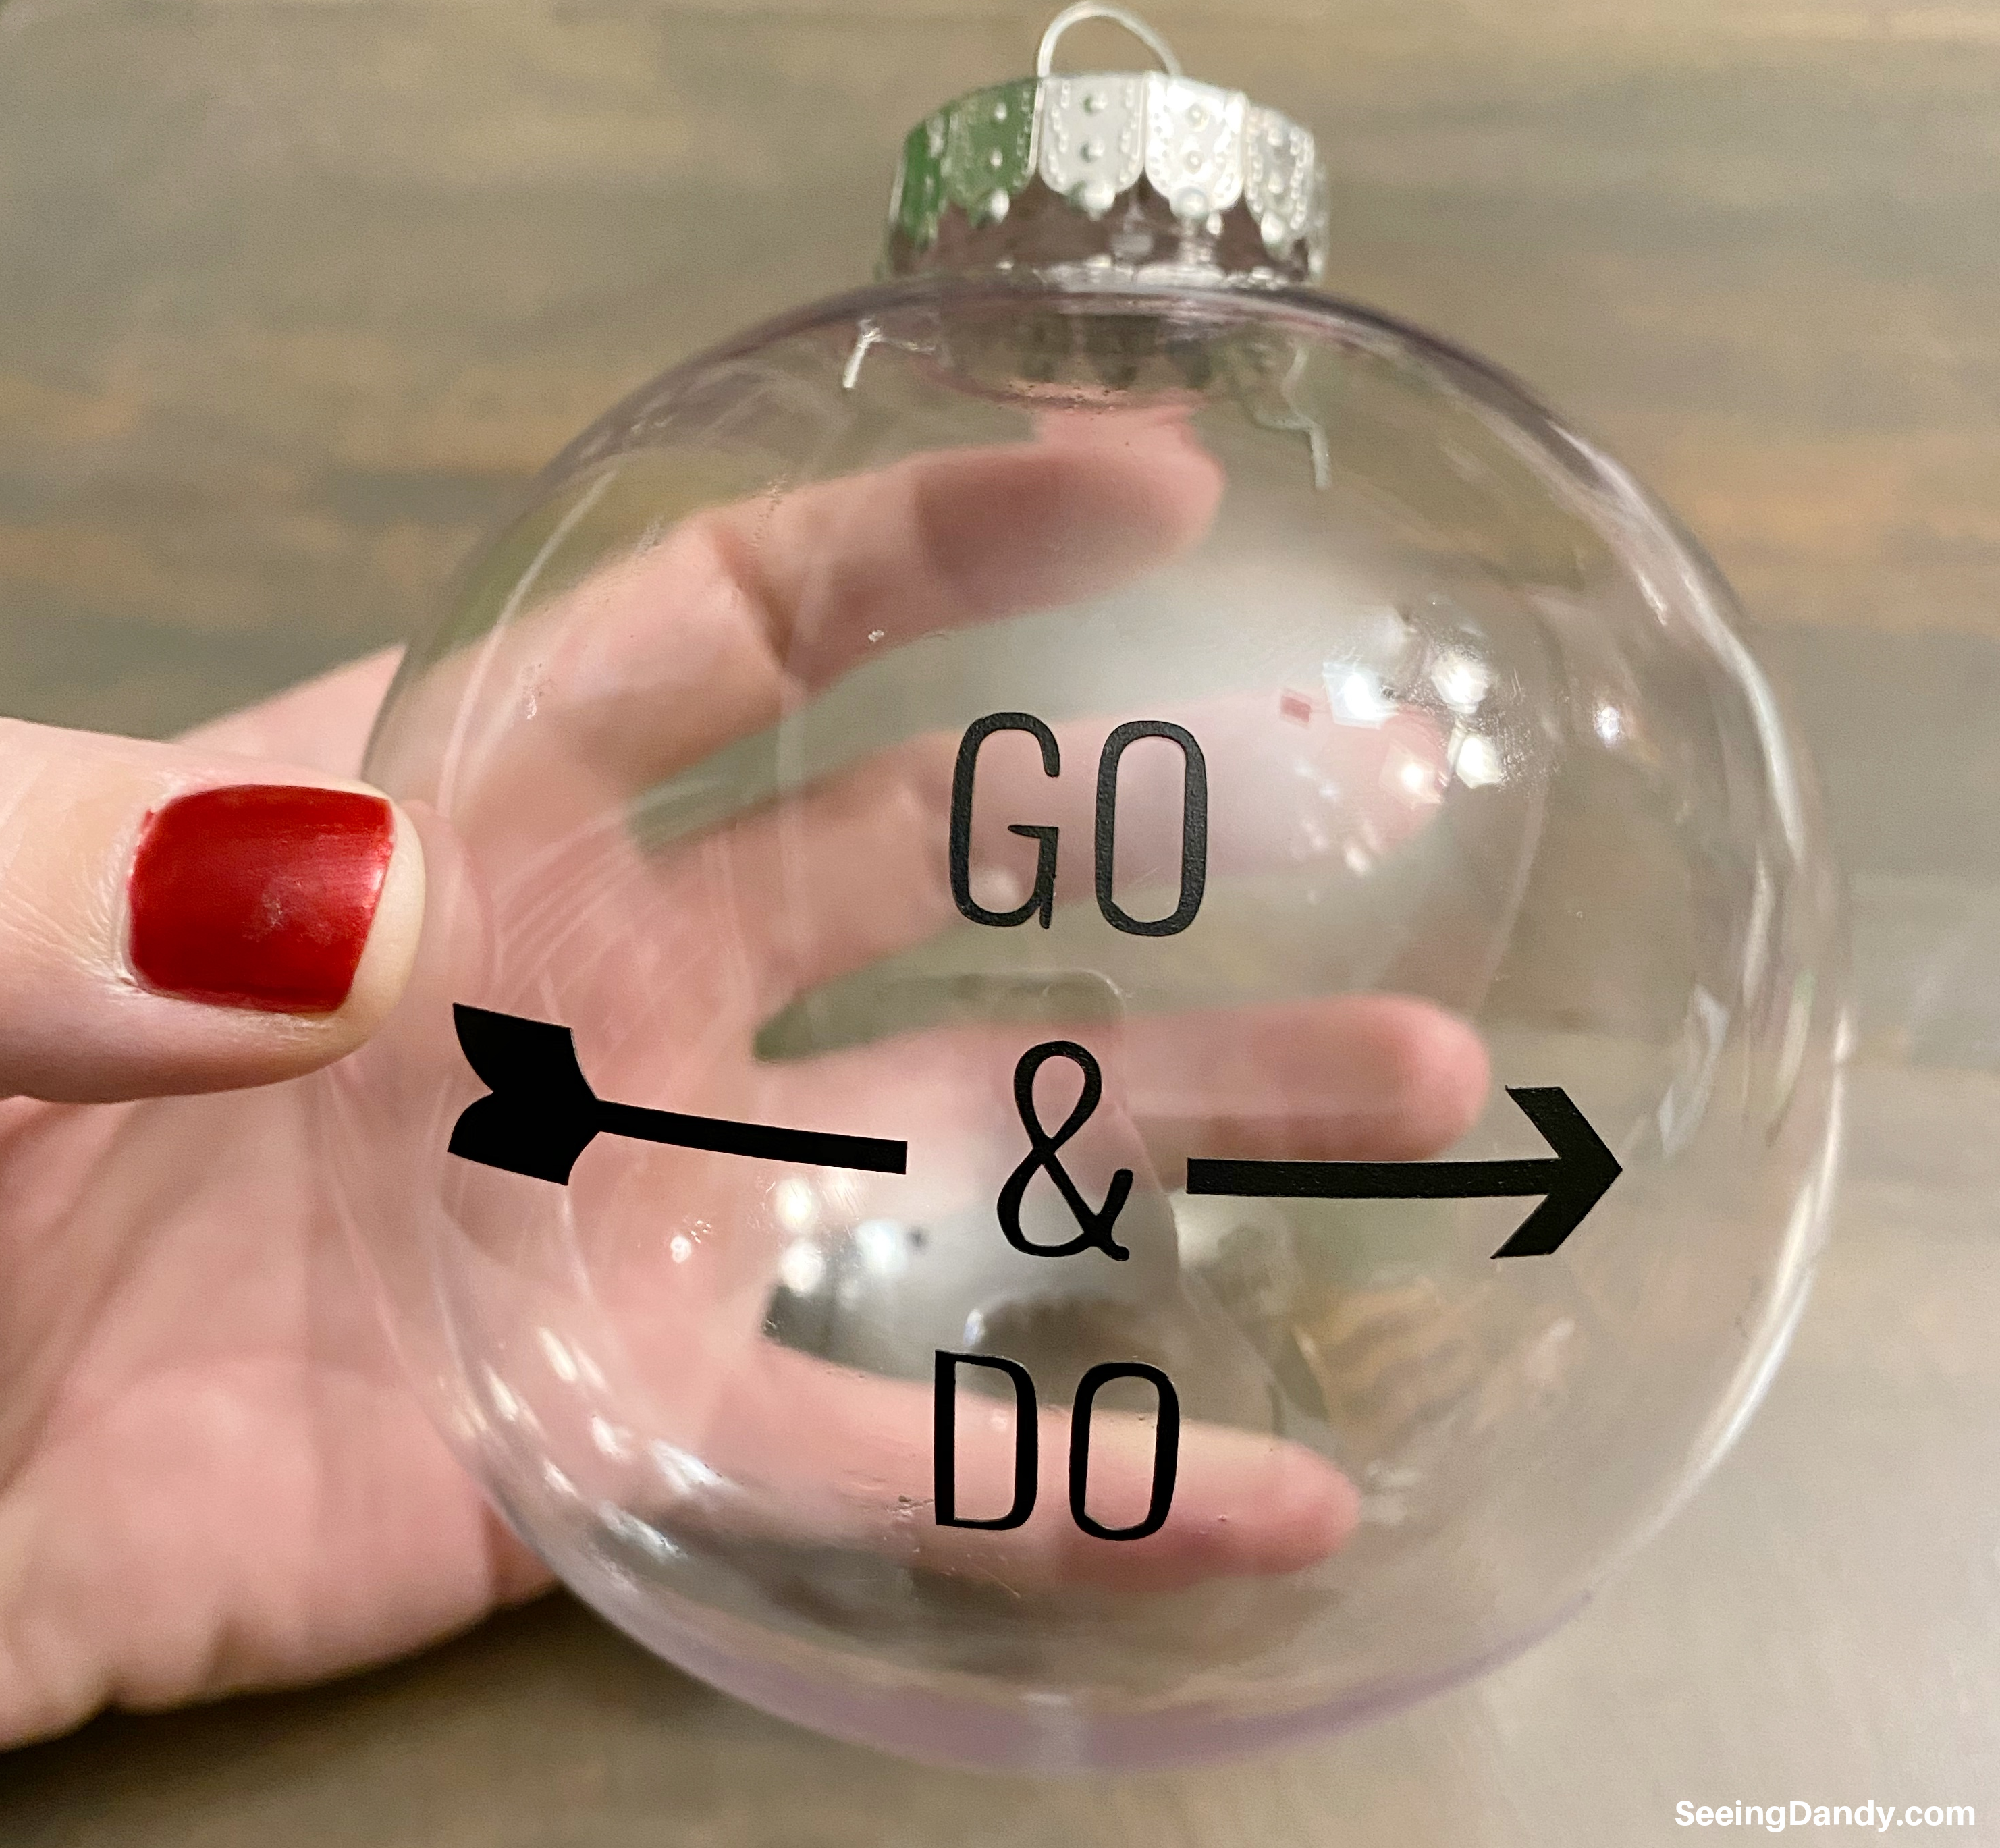 go and do theme christmas ornament, lds christmas ornaments, youth theme 2020, the church of jesus christ of latter day saints, plastic ornament, clear ball ornament, vinyl lettering